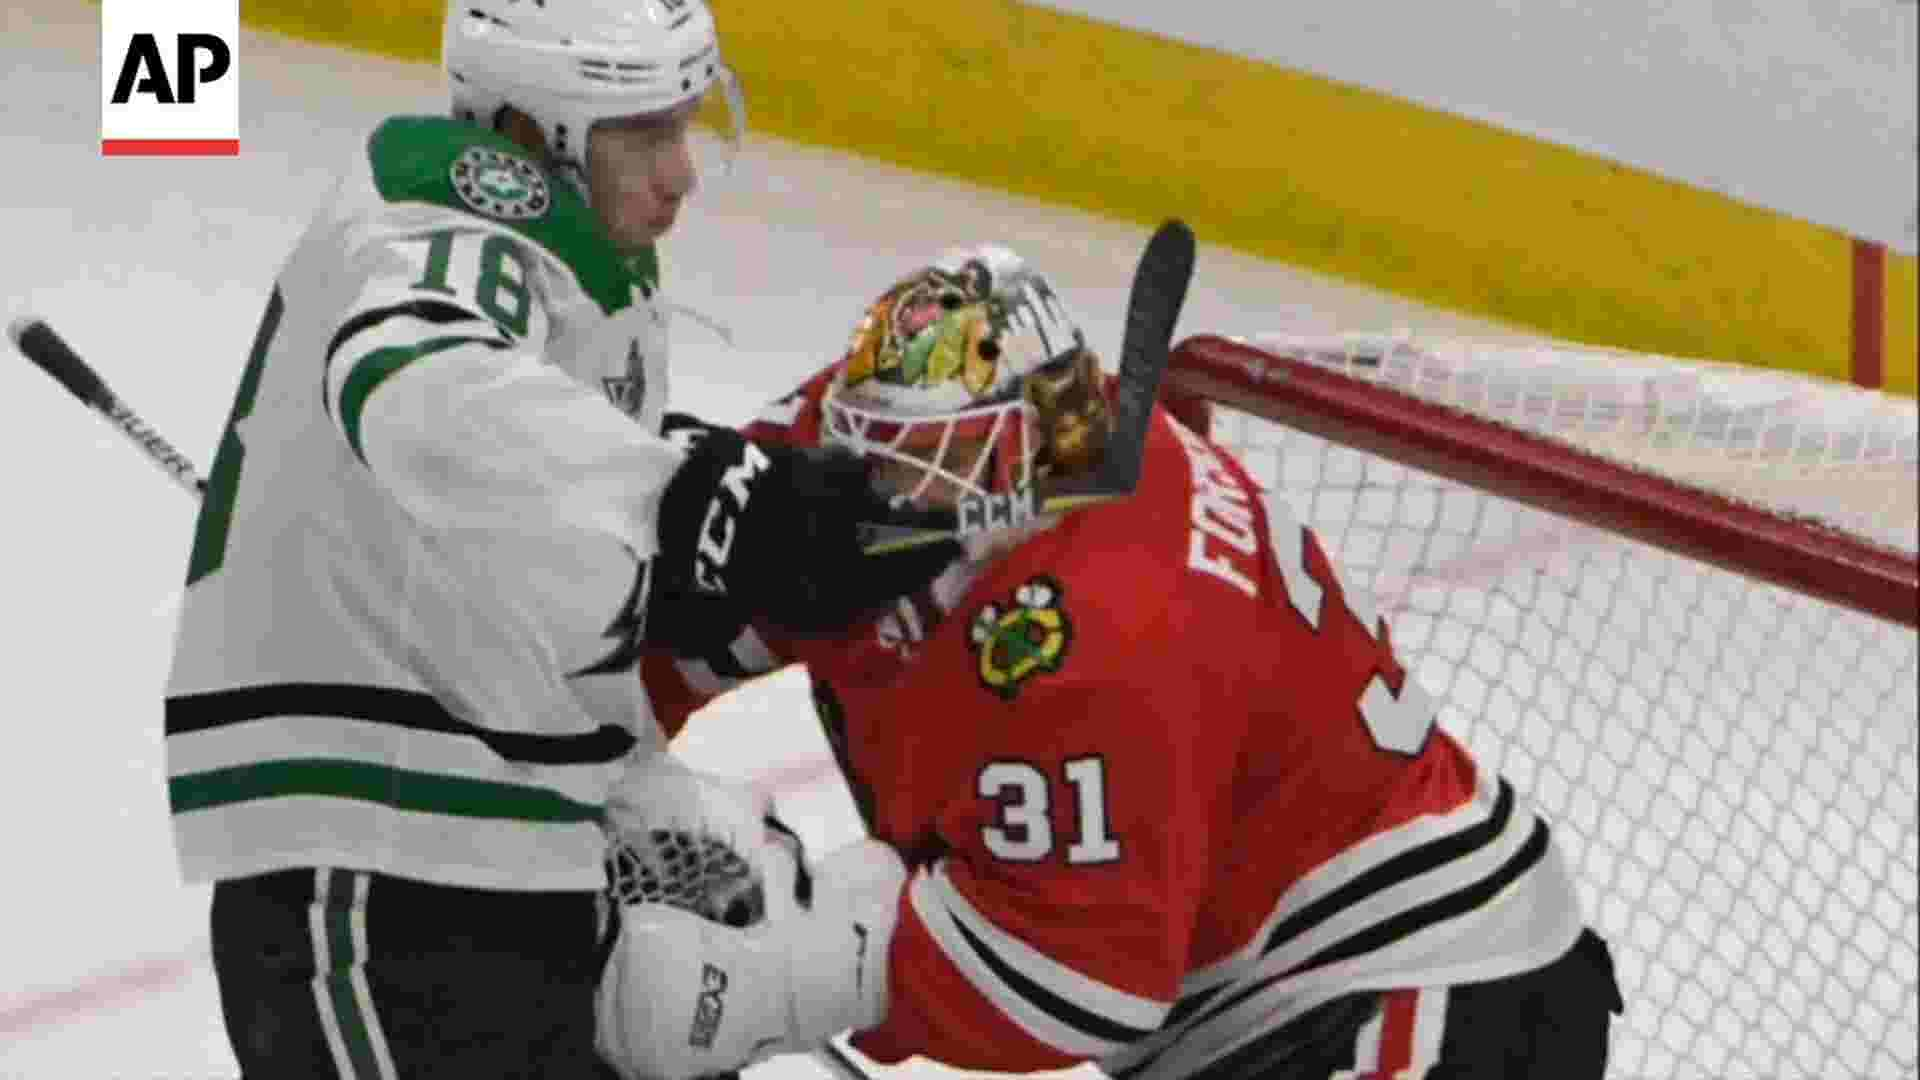 NHL goaltenders worry about increased concussions